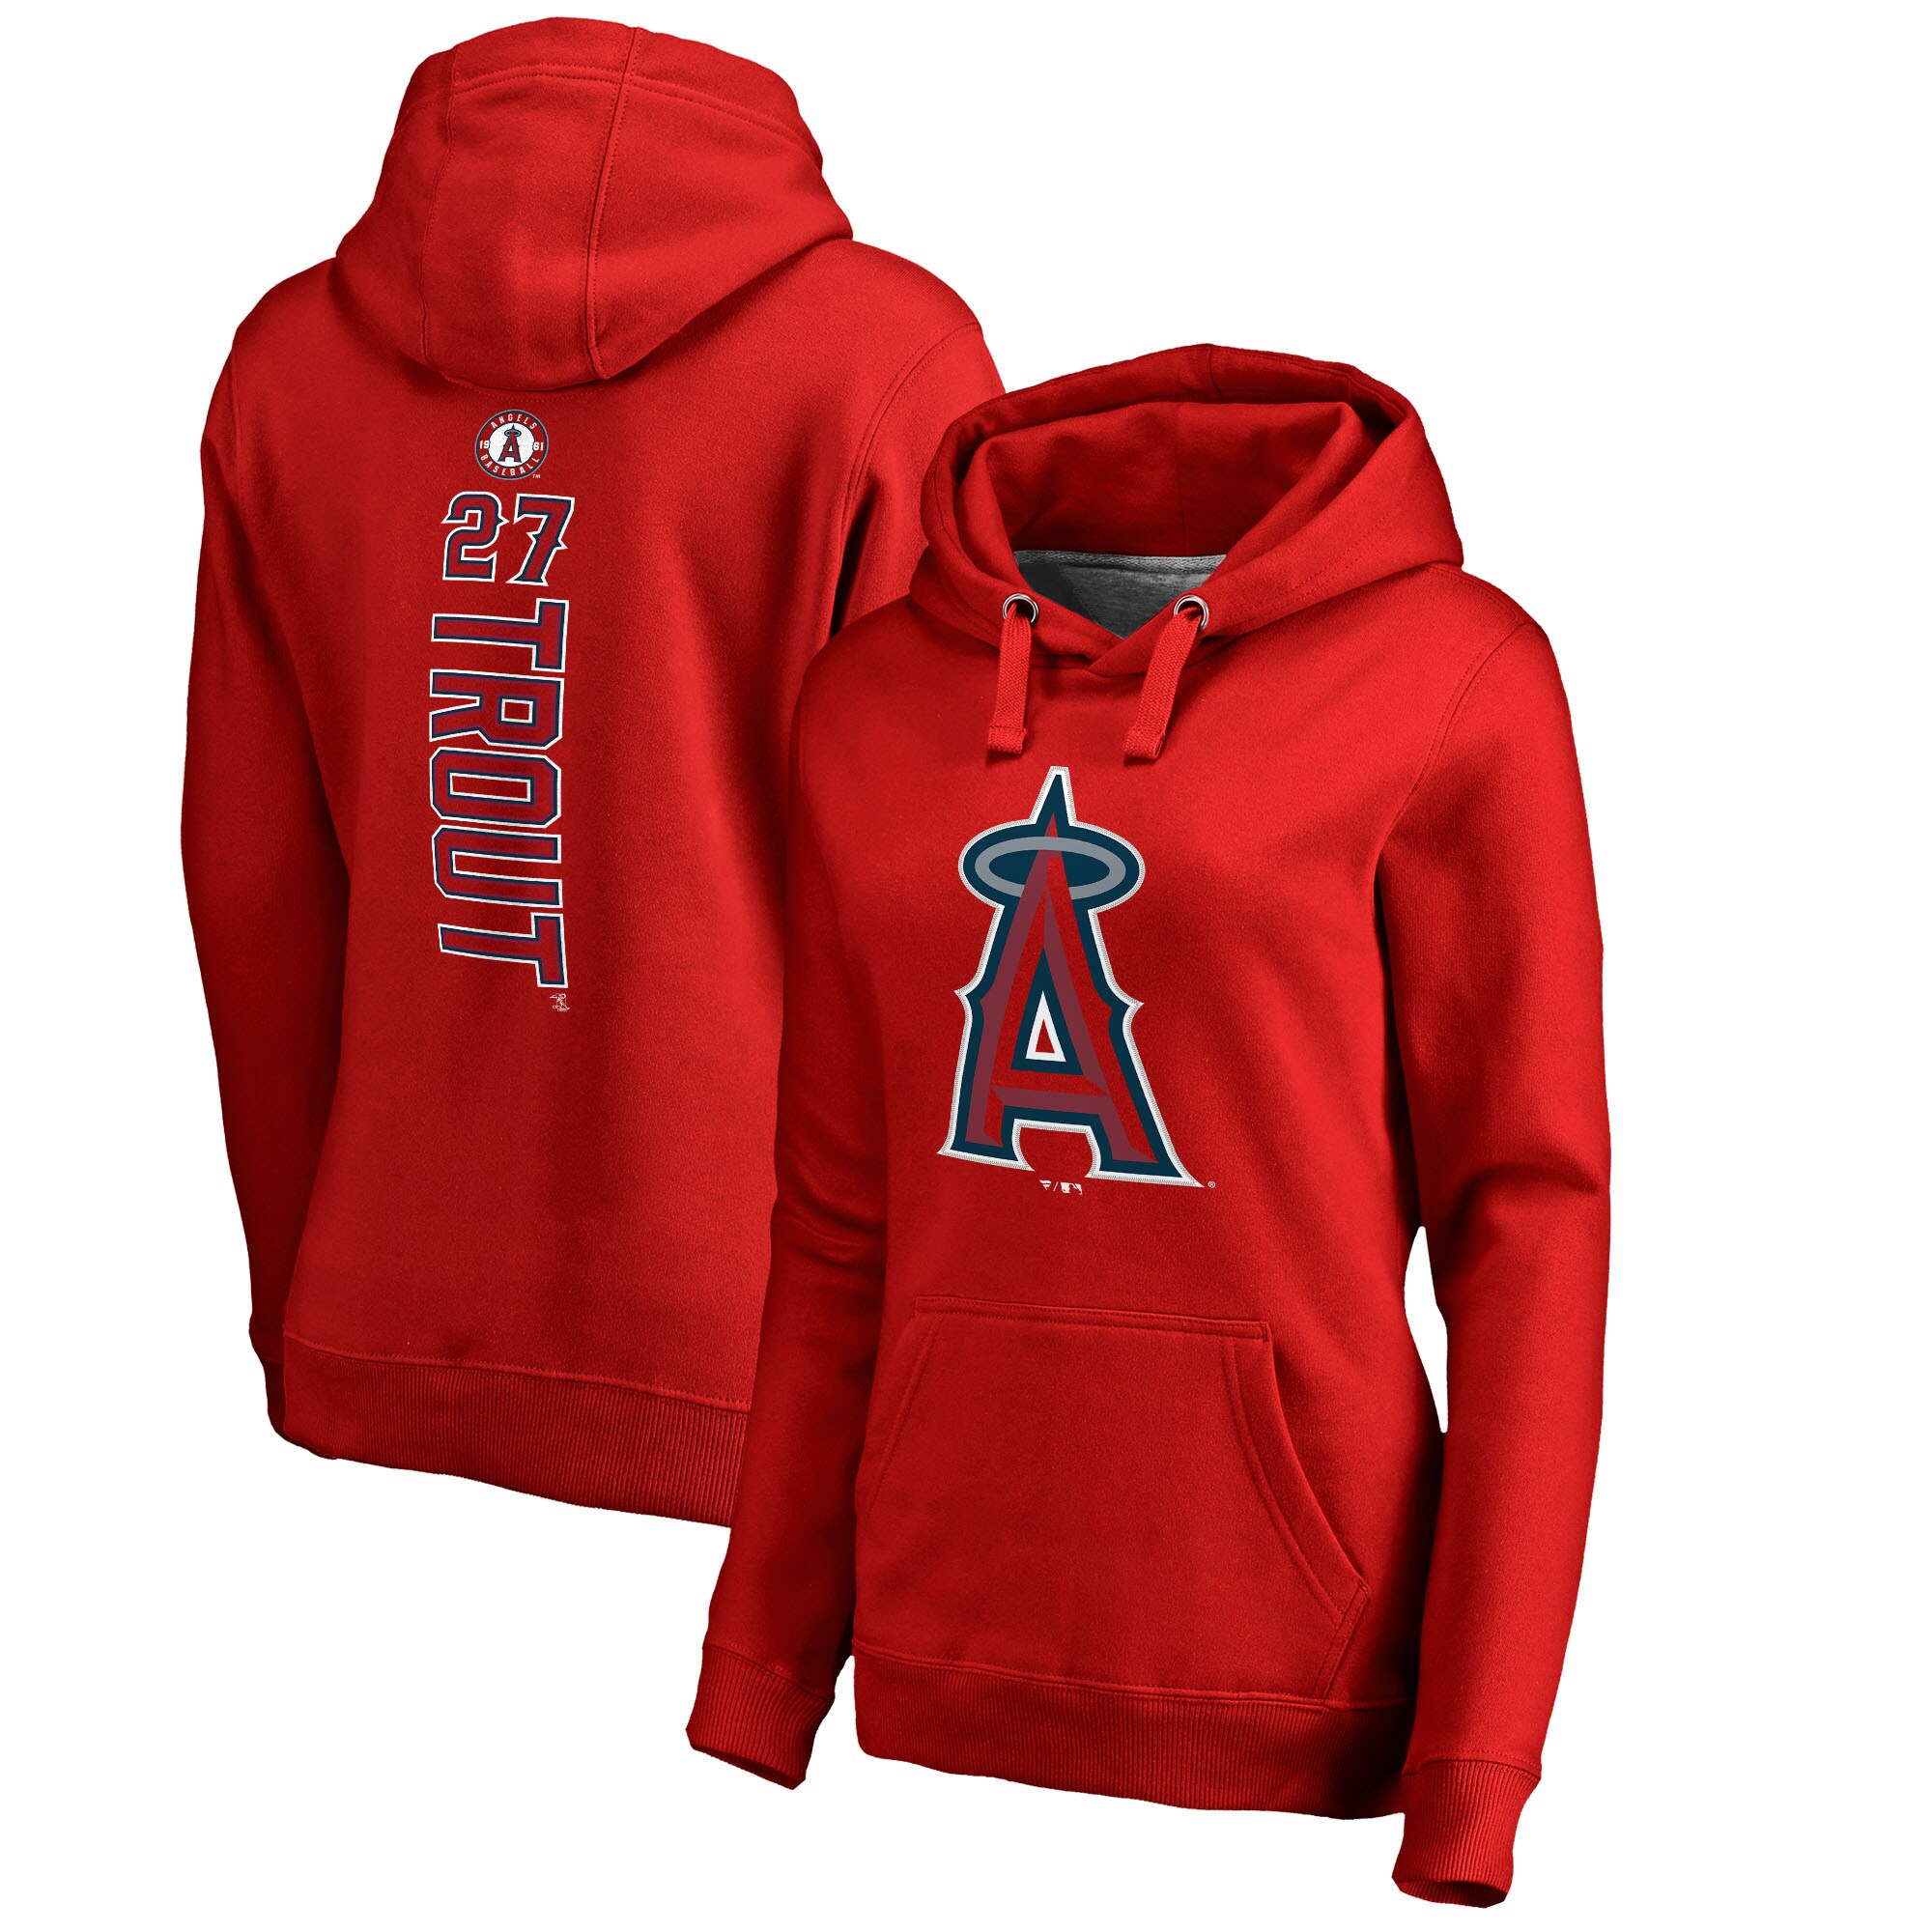 Mike Trout Los Angeles Angels Fanatics Branded Women's Backer Pullover Hoodie - Red